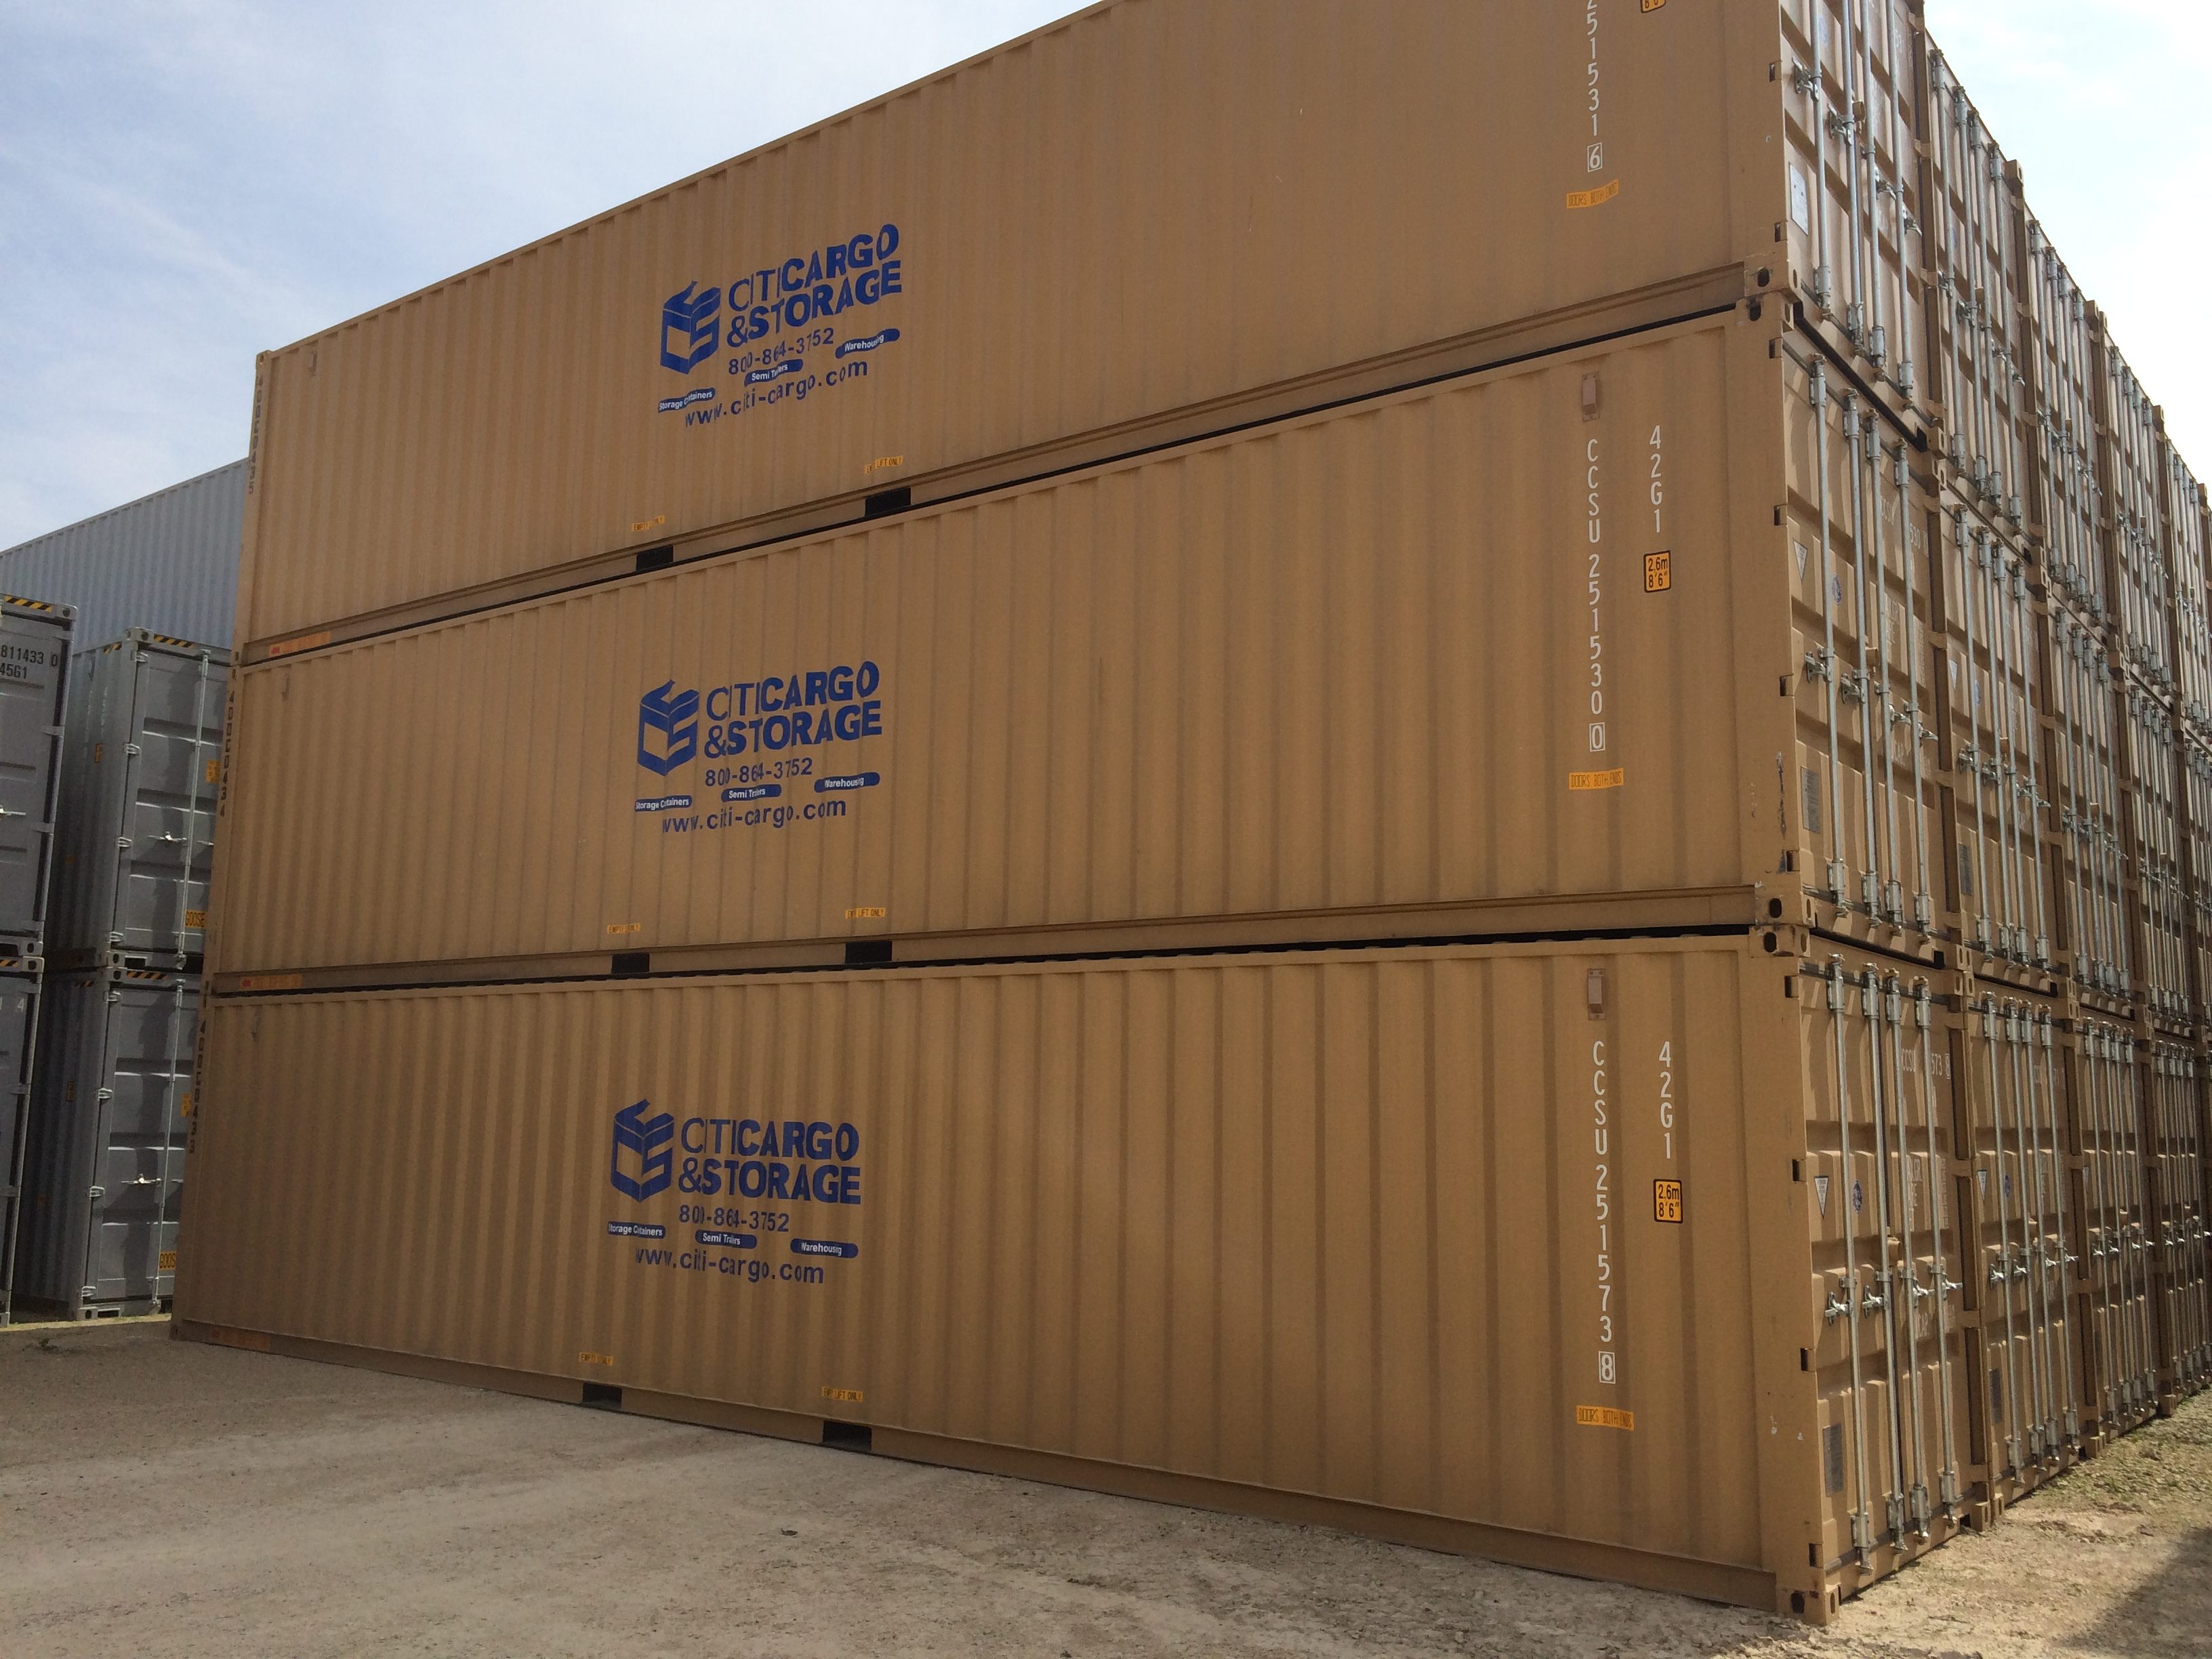 Storage Containers Minneapolis On Site Portable and Mobile Storage